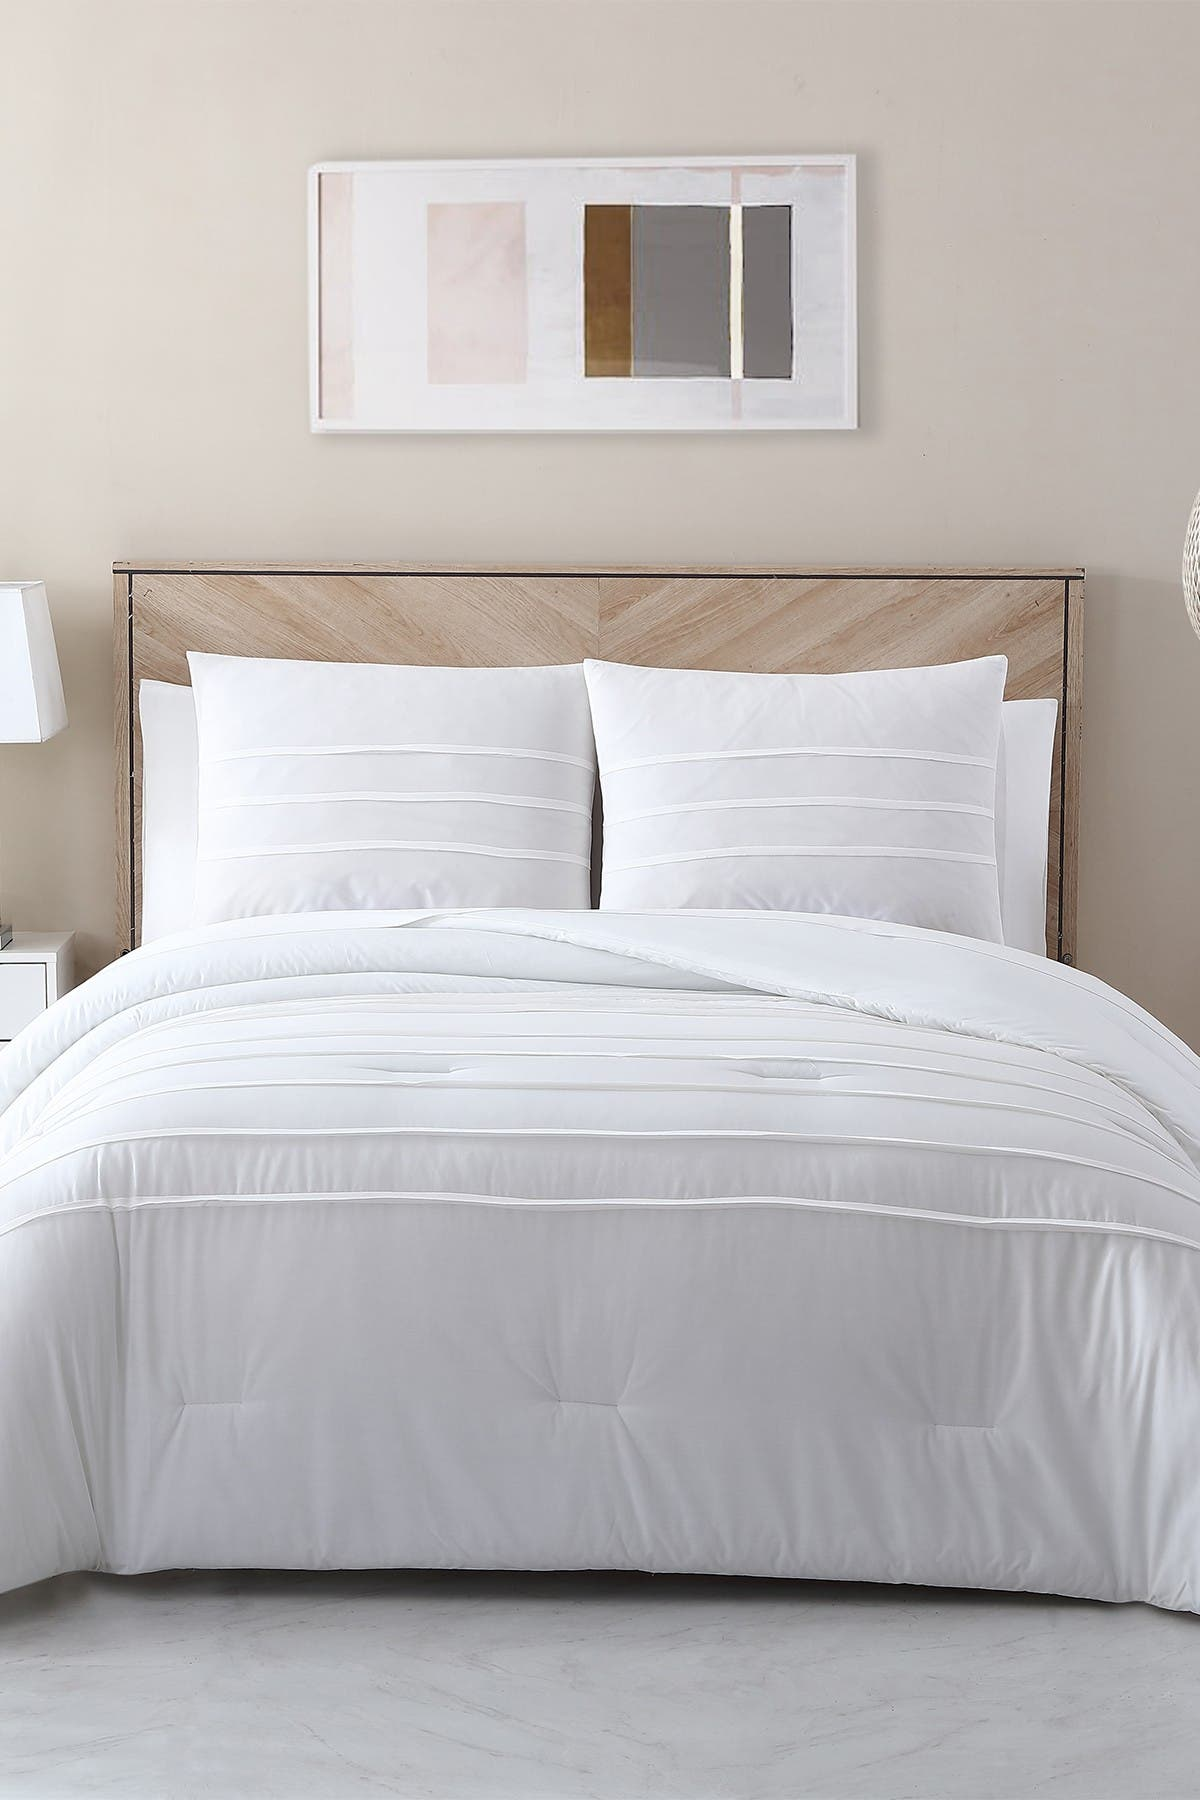 Image of VCNY HOME Avery HomeGrown Cotton Lyocell Pleated Comforter Set - Full/Queen